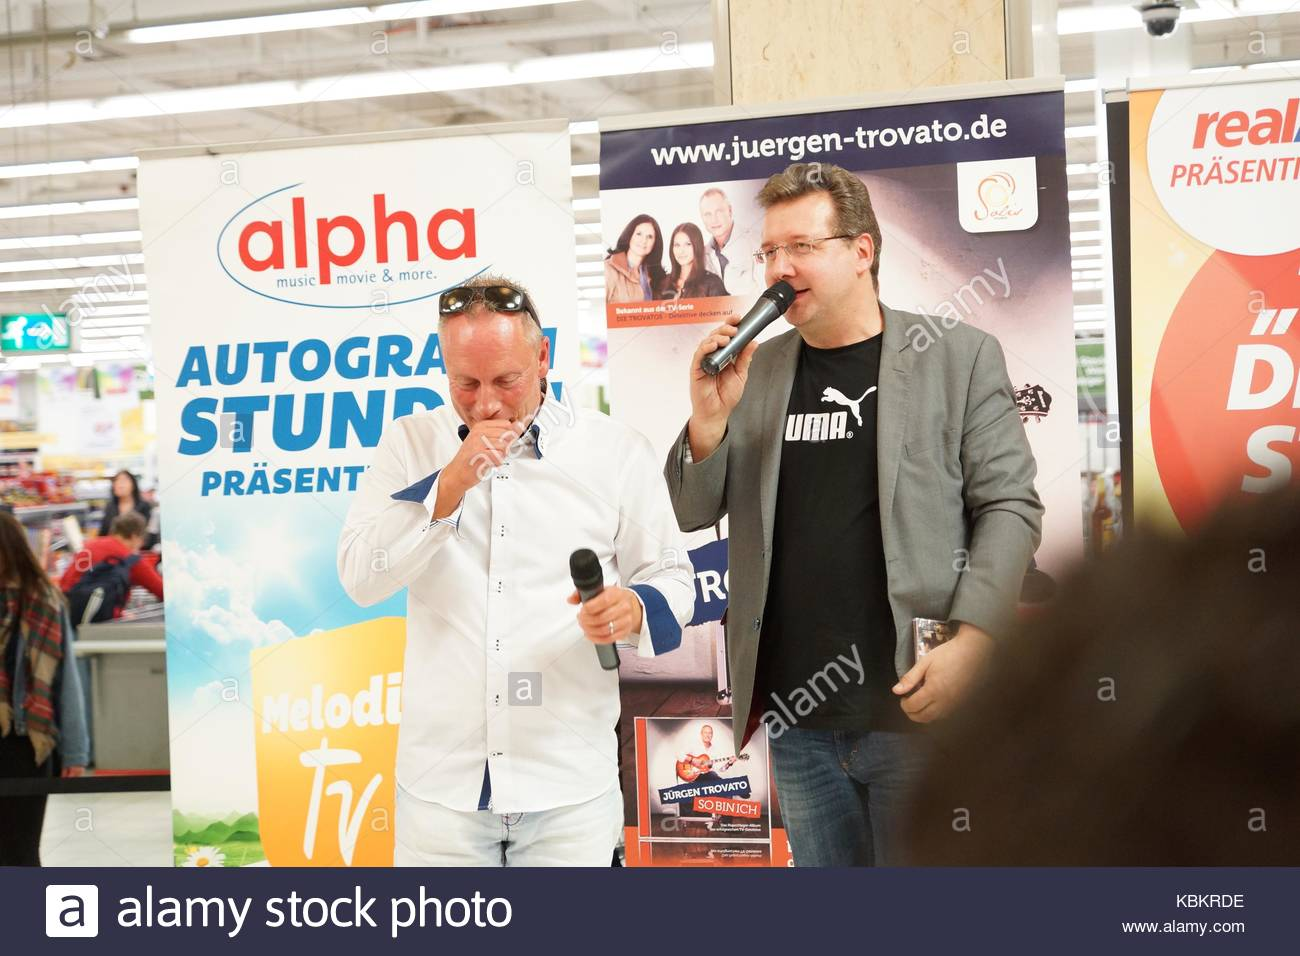 Juergen Trovato And Jens Seidler Juergen Trovato Known From The